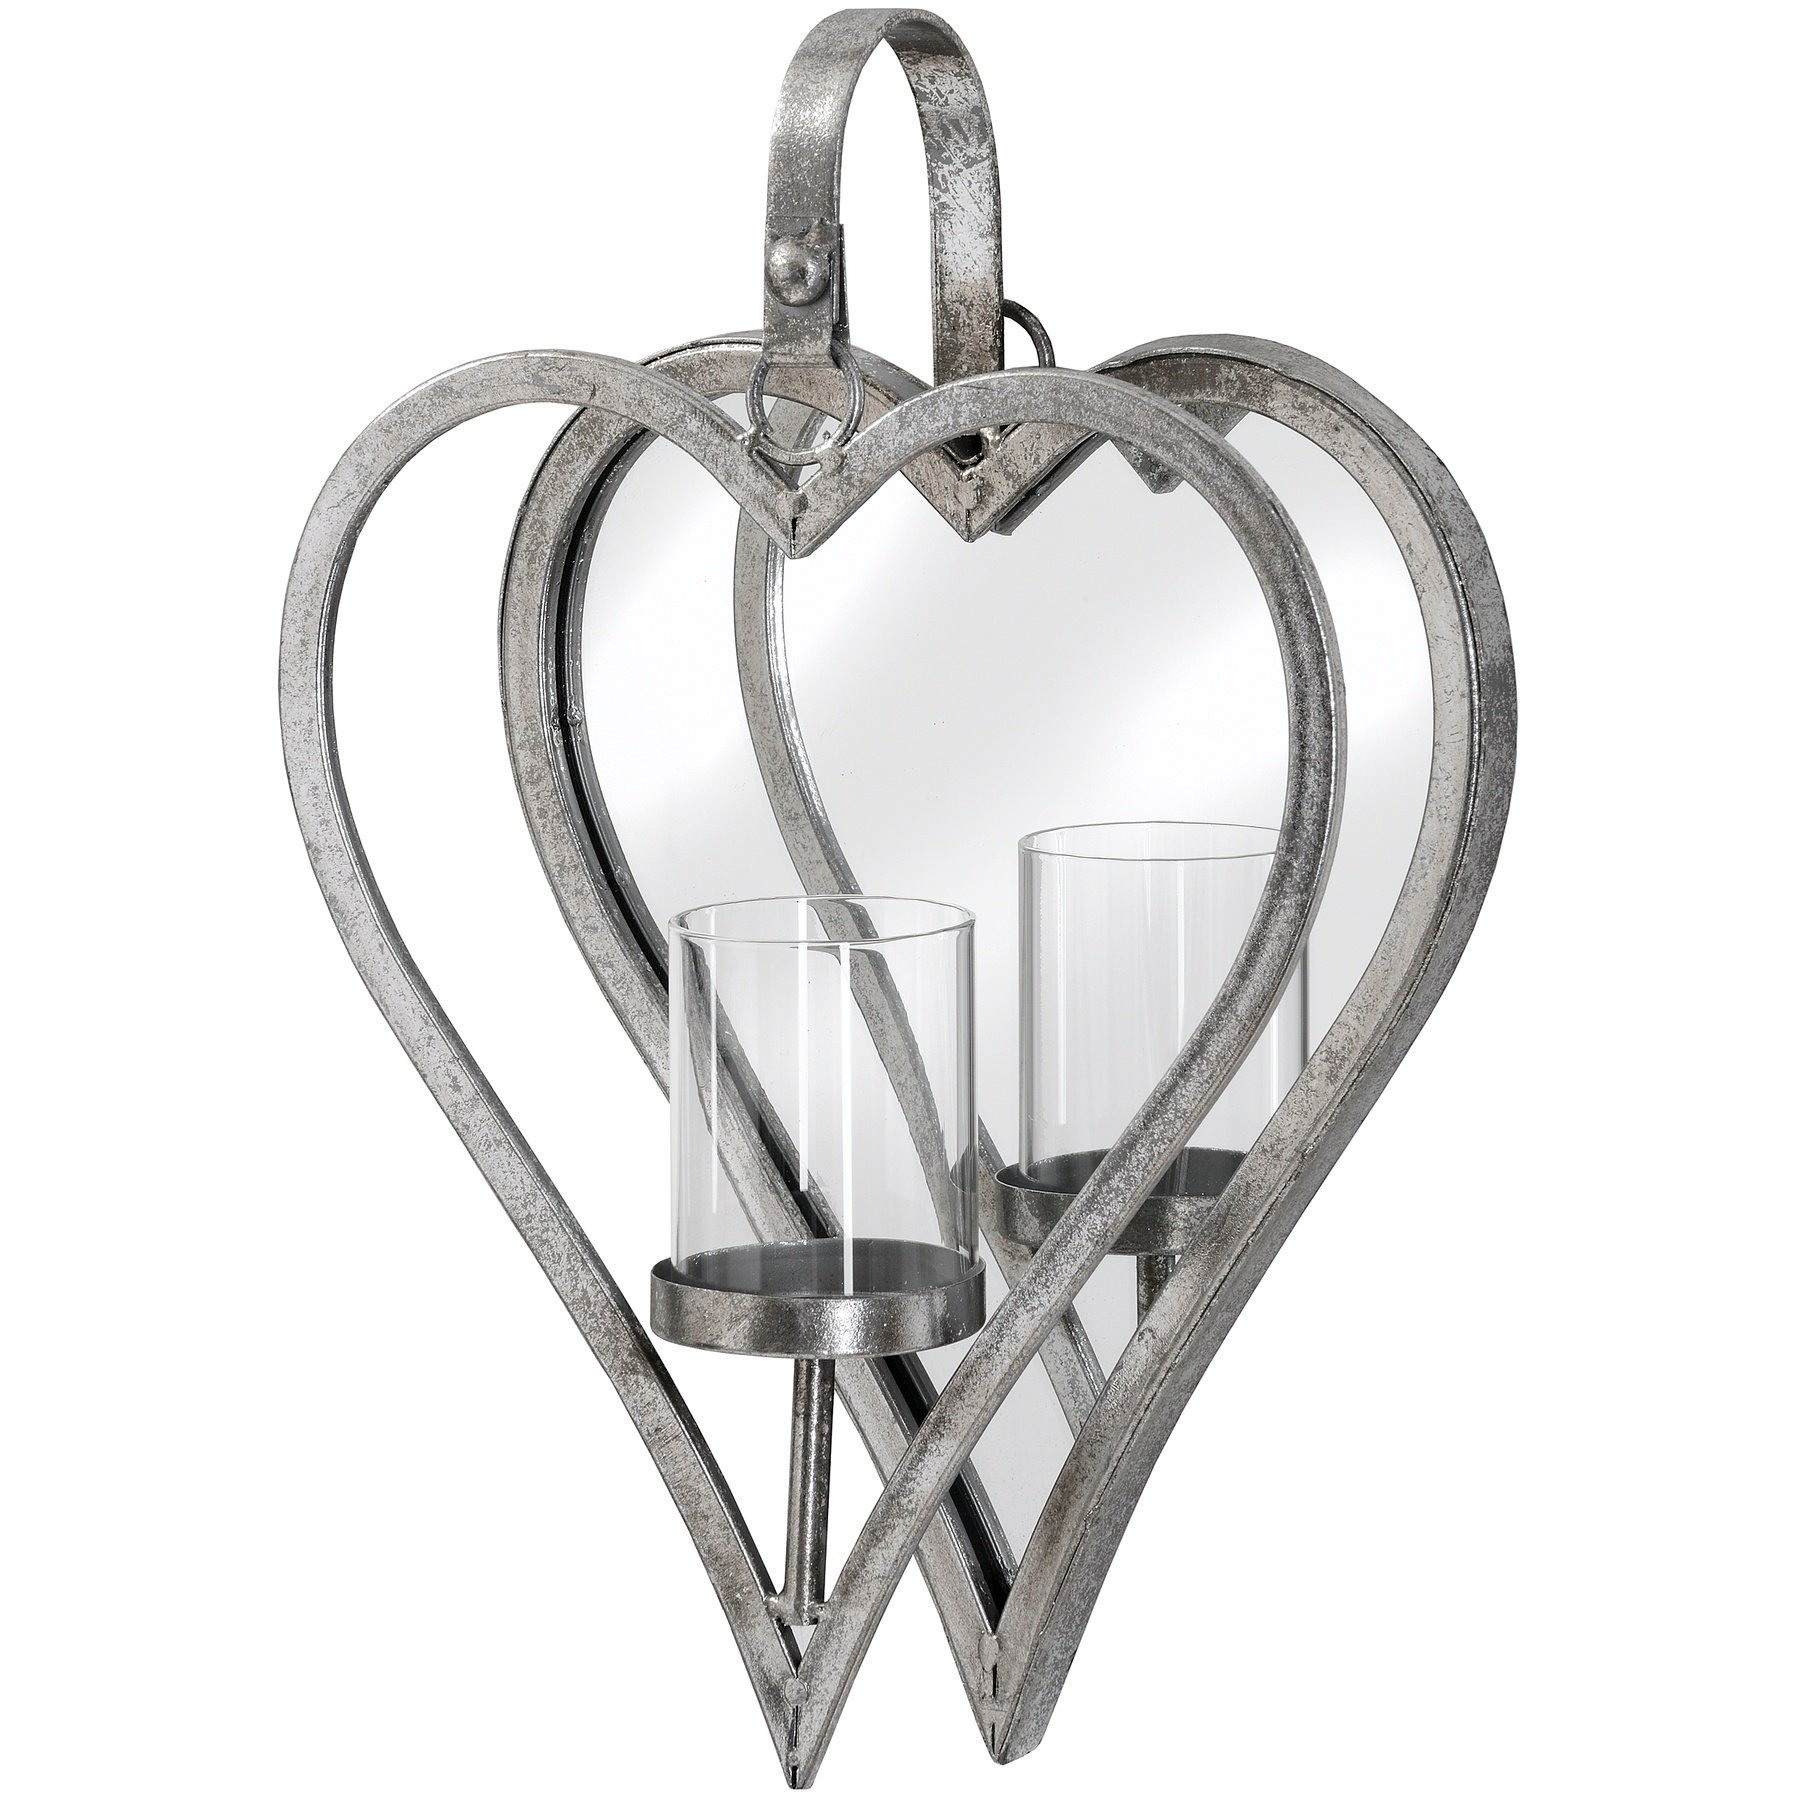 Hill Interiors Heart Mirror And Candle Holder